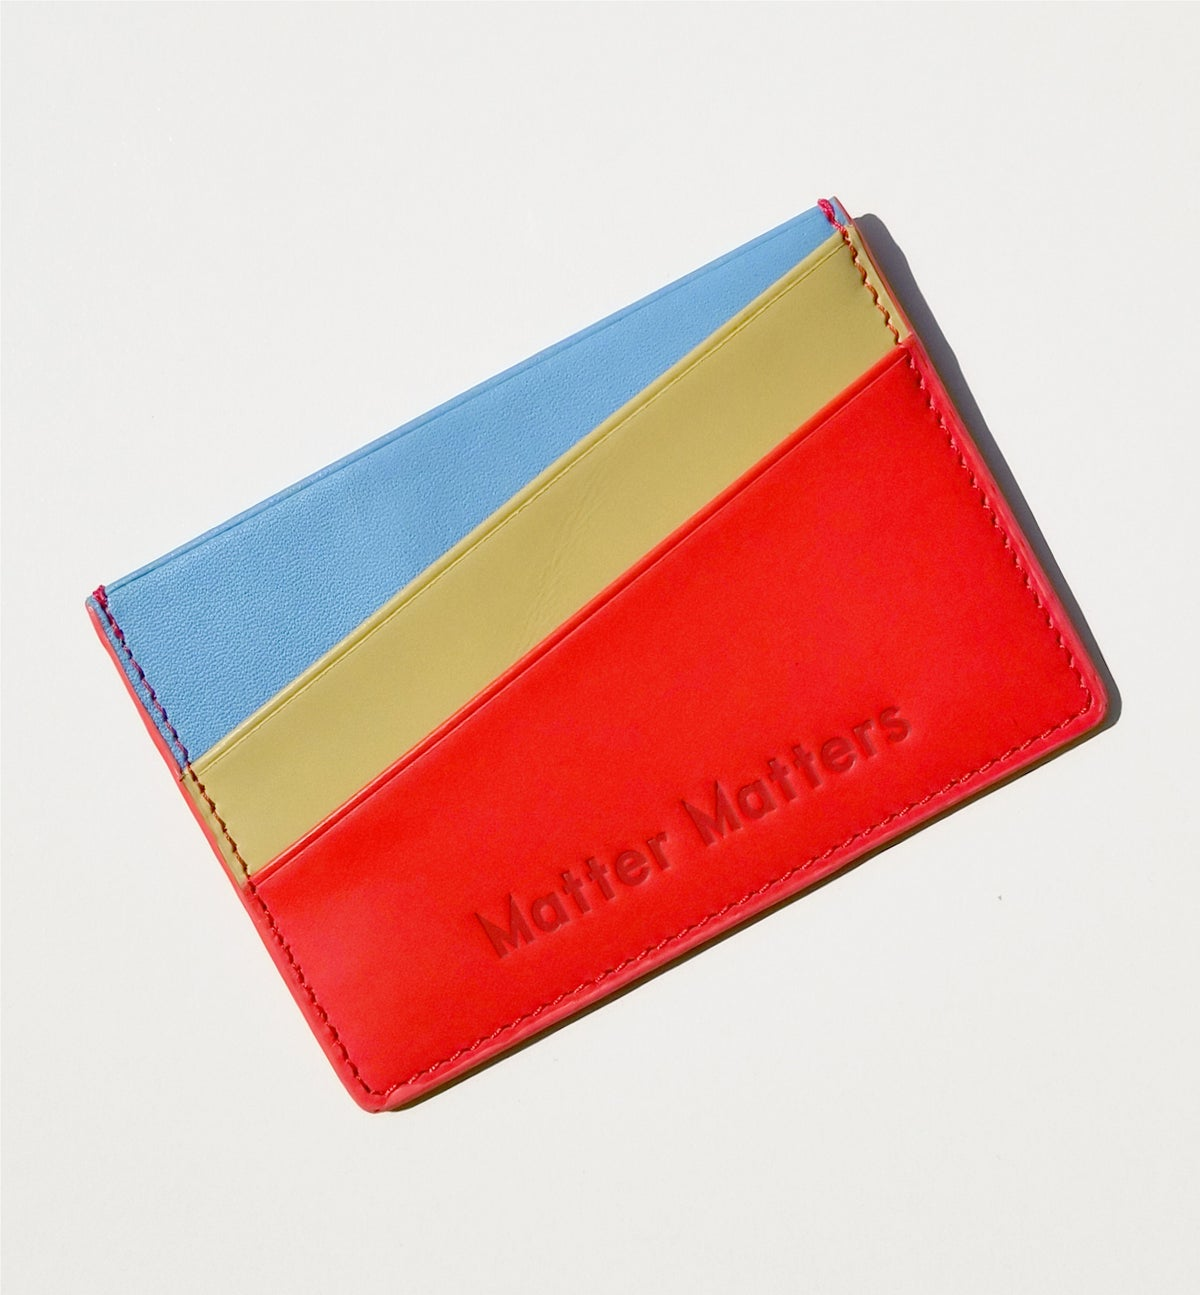 Image of 'Good Enough ' Multicolor card case - Red